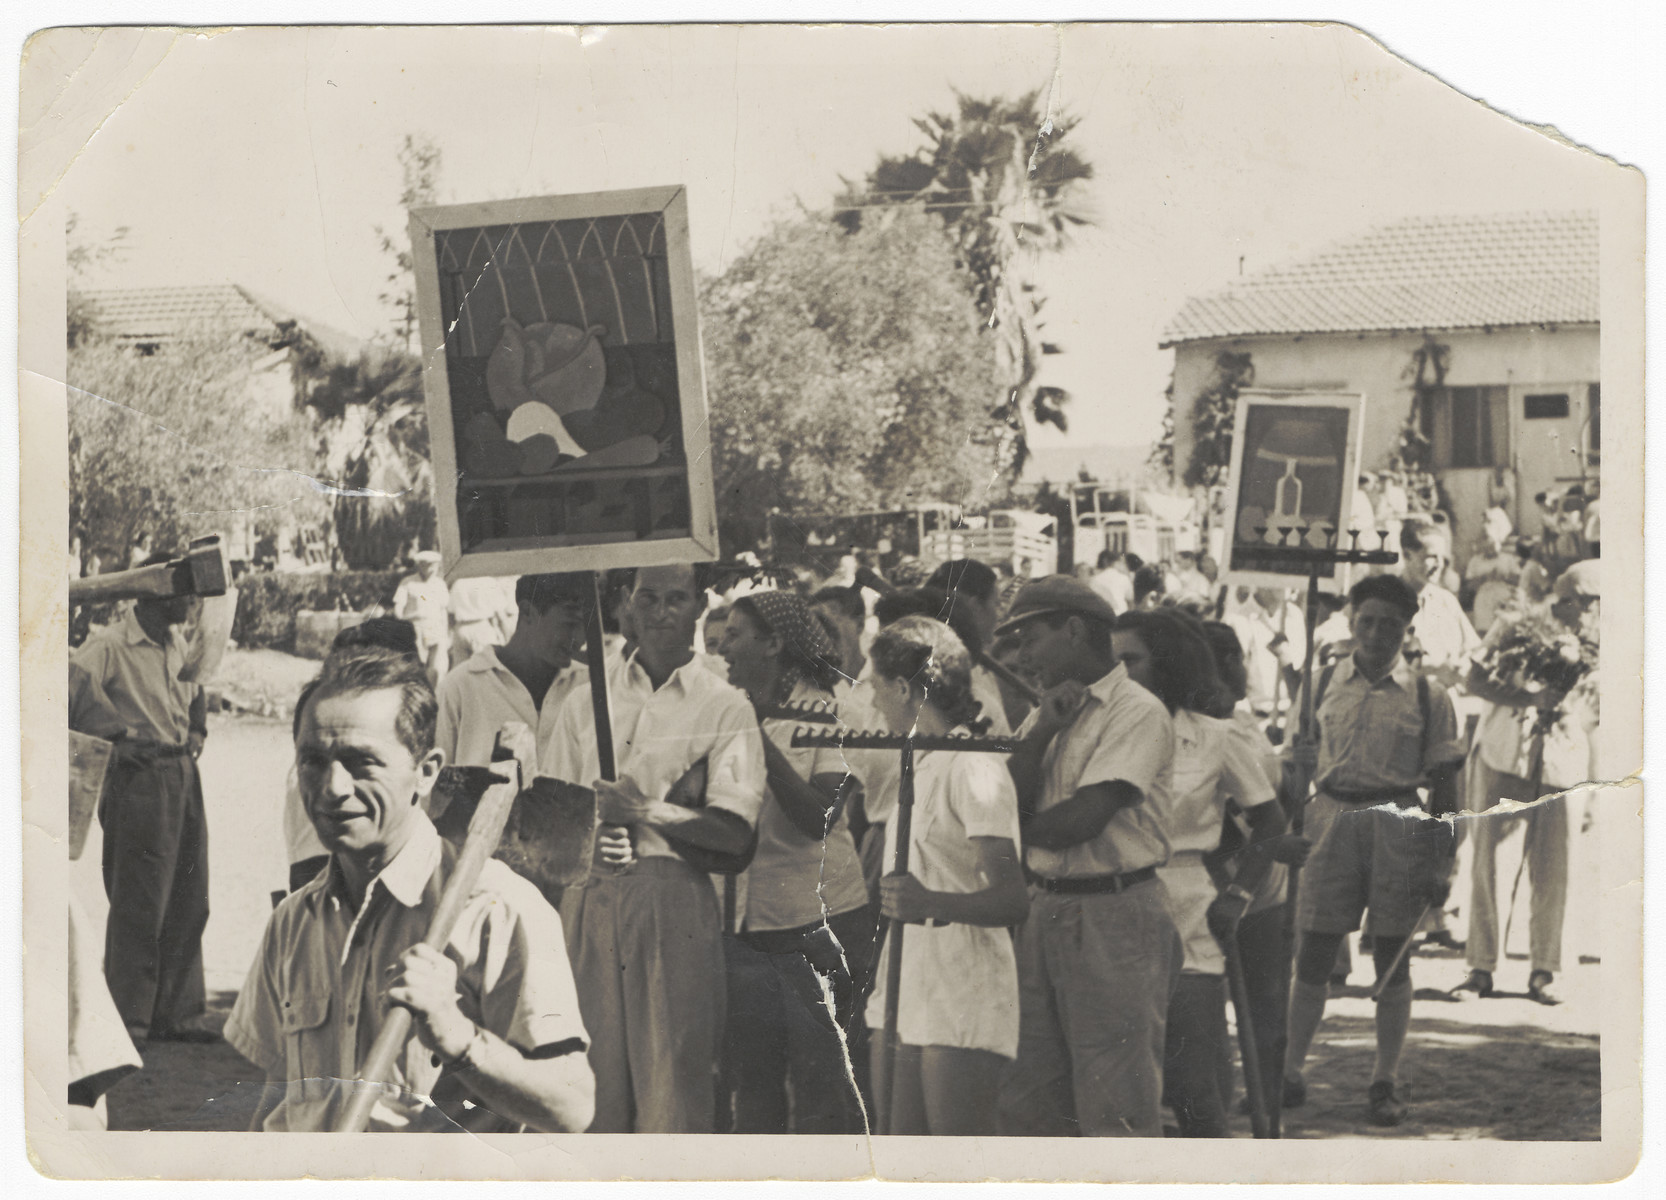 Members of a Shomer Hatzair Kibbutz, Gan Shmuel, parade on May Day with tools and banners illustrating their occupations.  Among those pictured is Josef Fischer who is carrying a hose to symbolize his work spraying crops for insects.